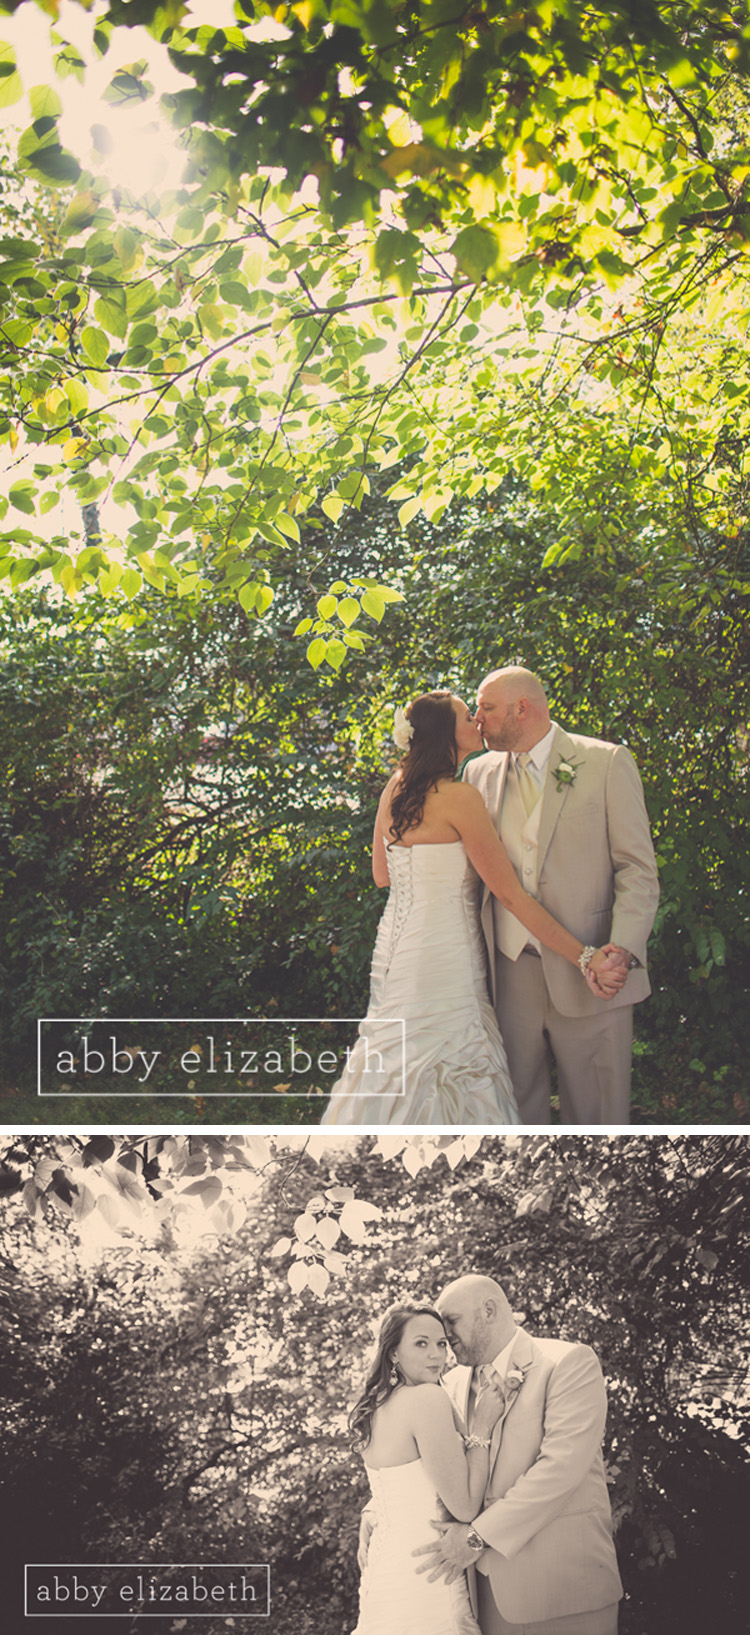 Crescent_Bend_Fall_Wedding_Knoxville_TN_bride_groom_romantic.jpg